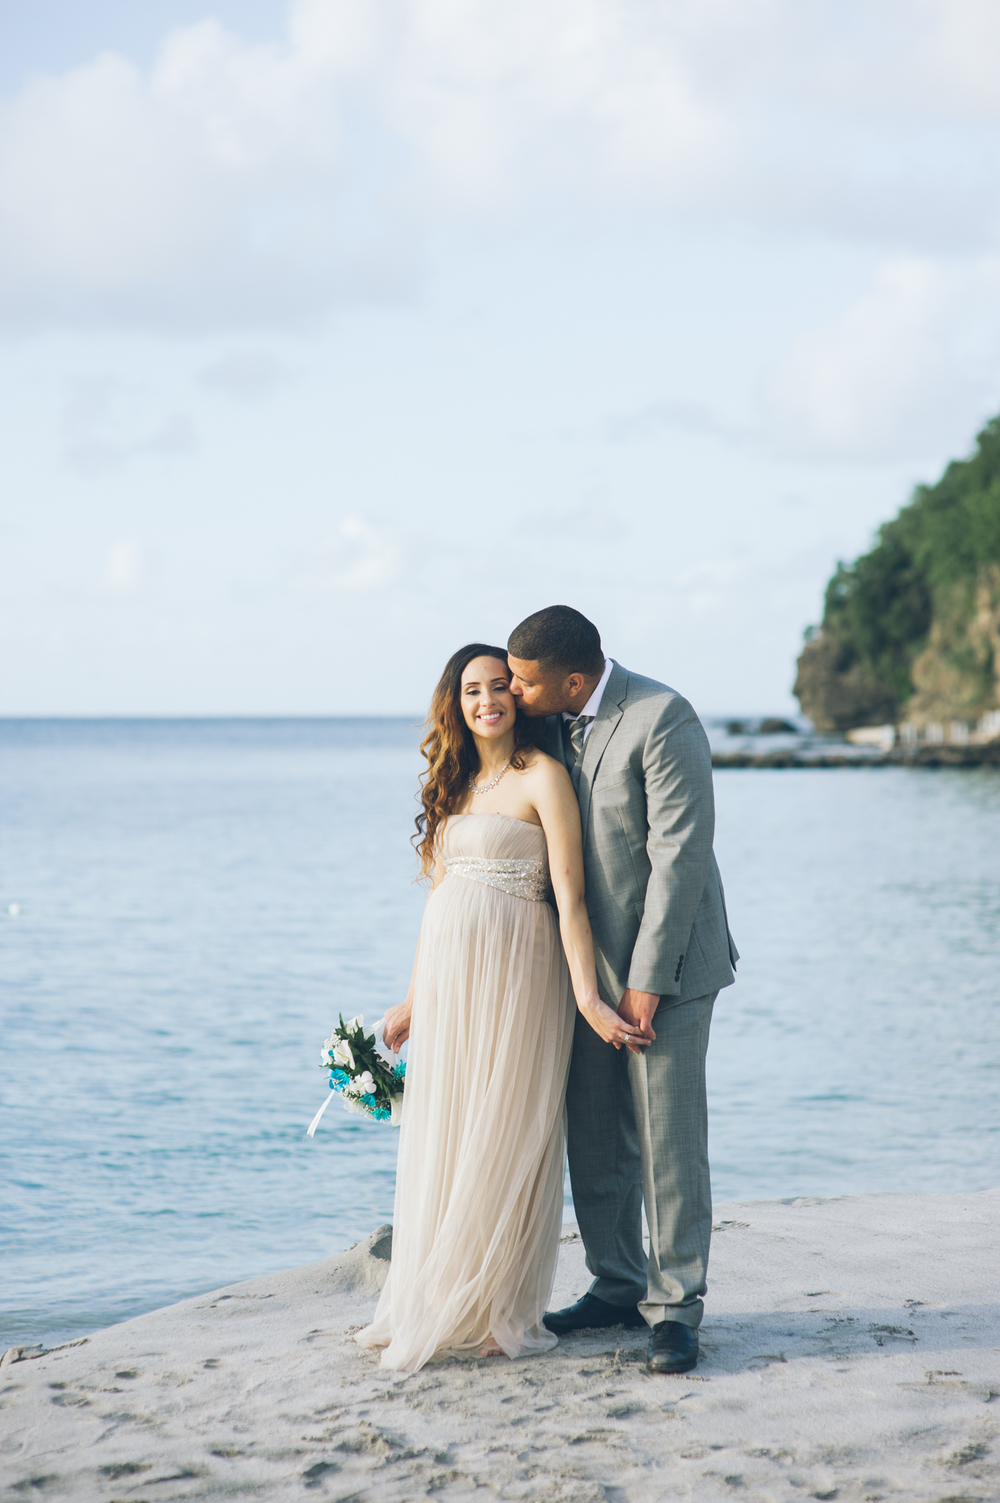 St Lucia Destination Wedding36.jpg